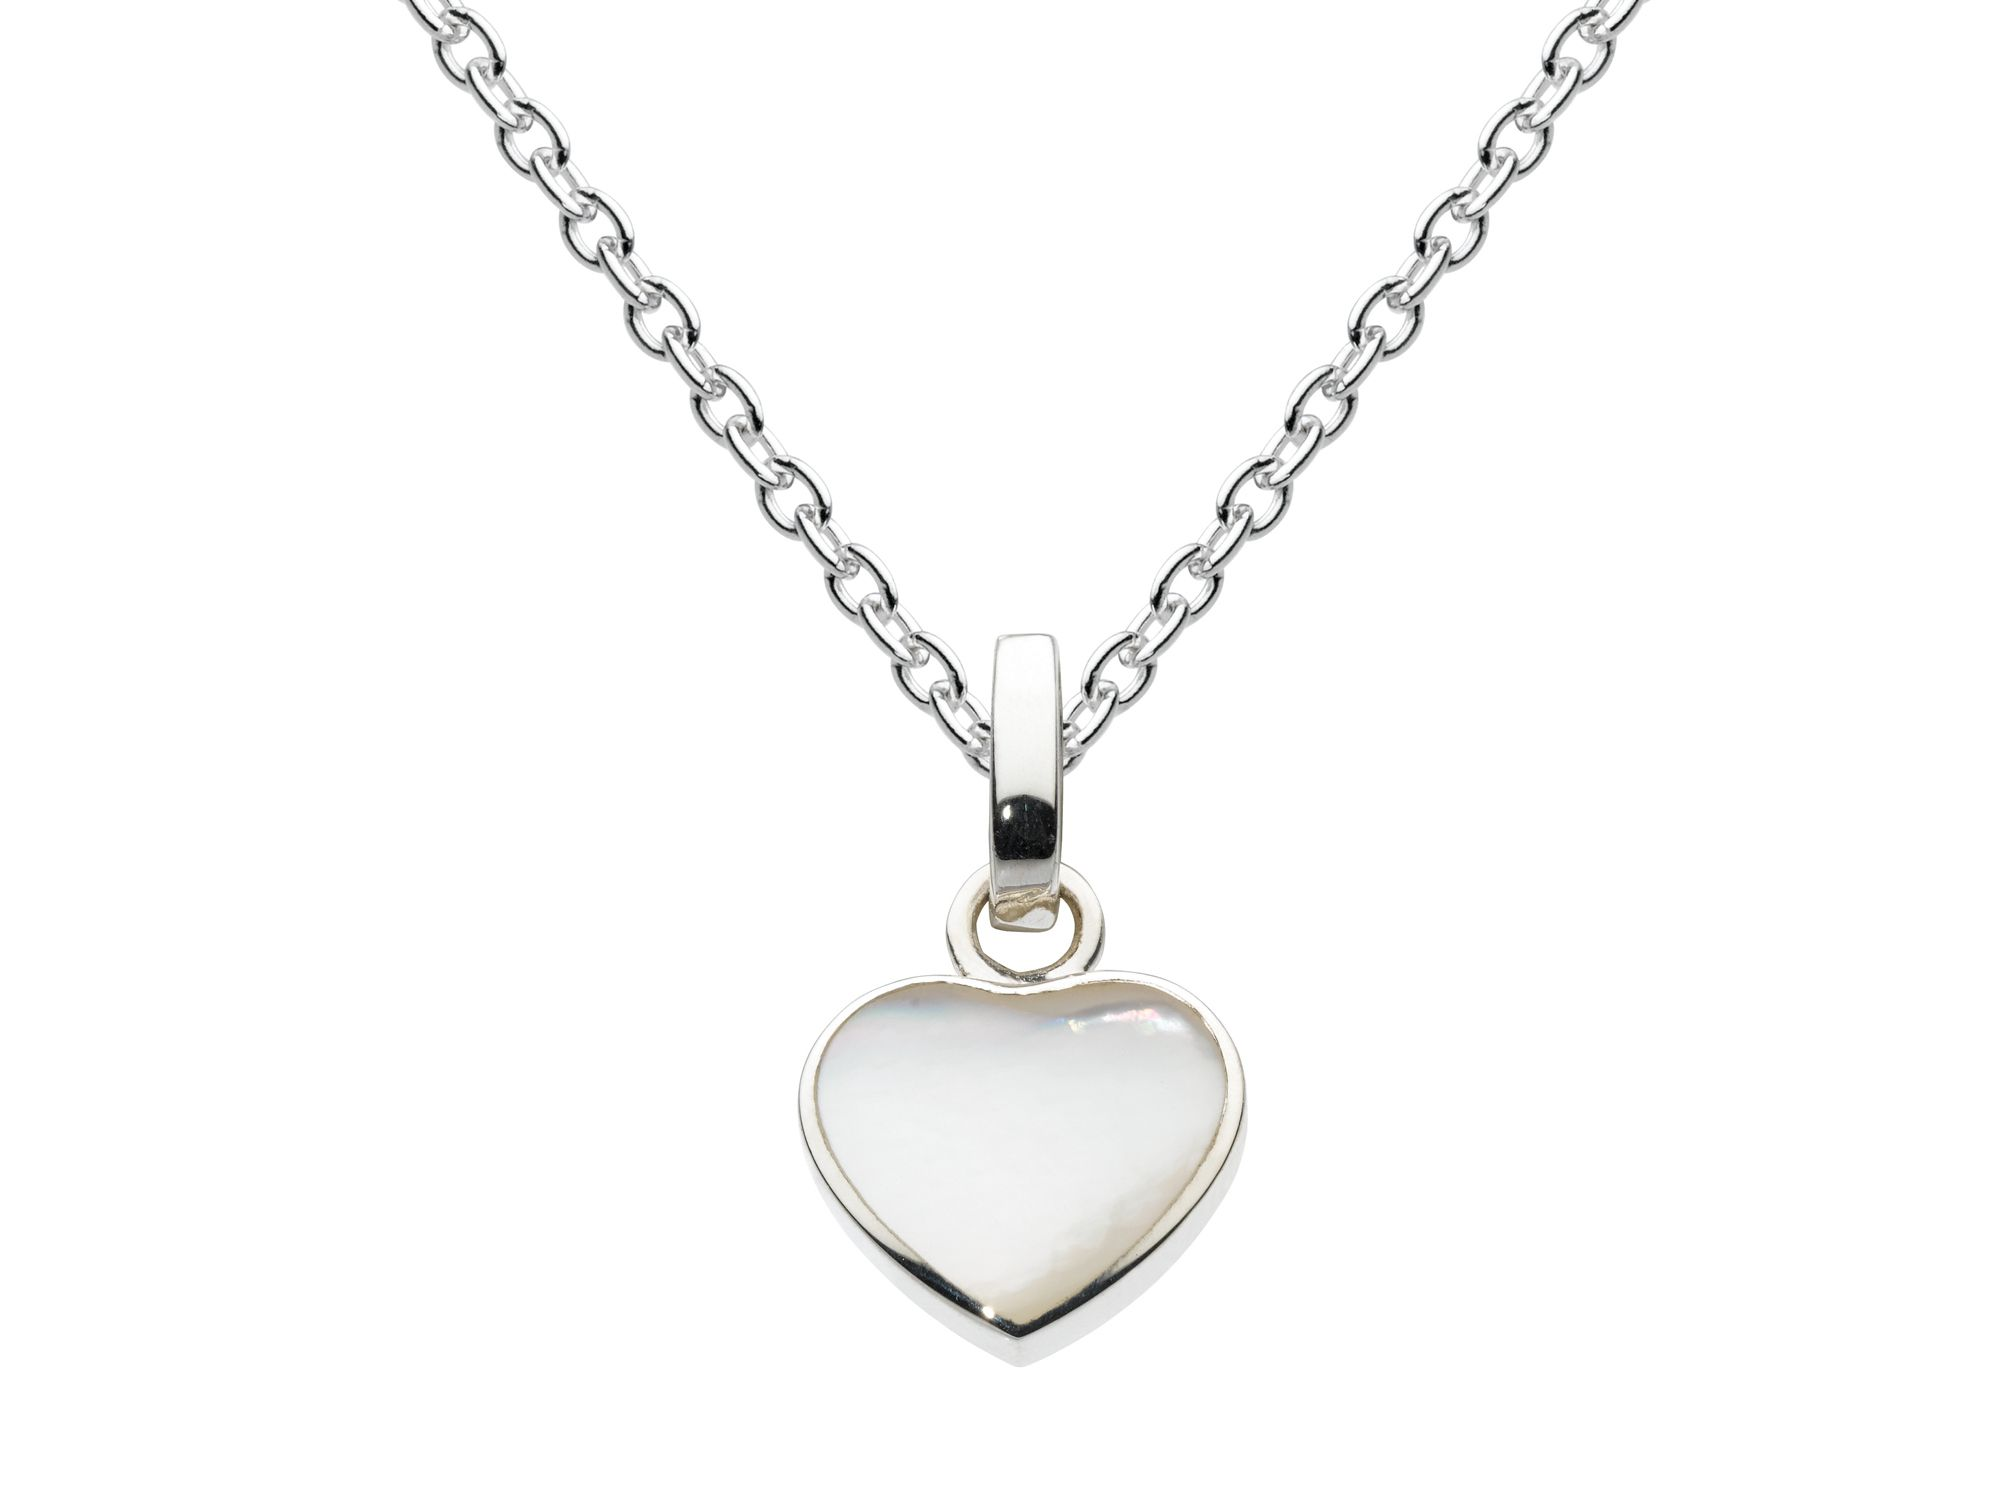 Sterling silver mother of pear lheart pendant